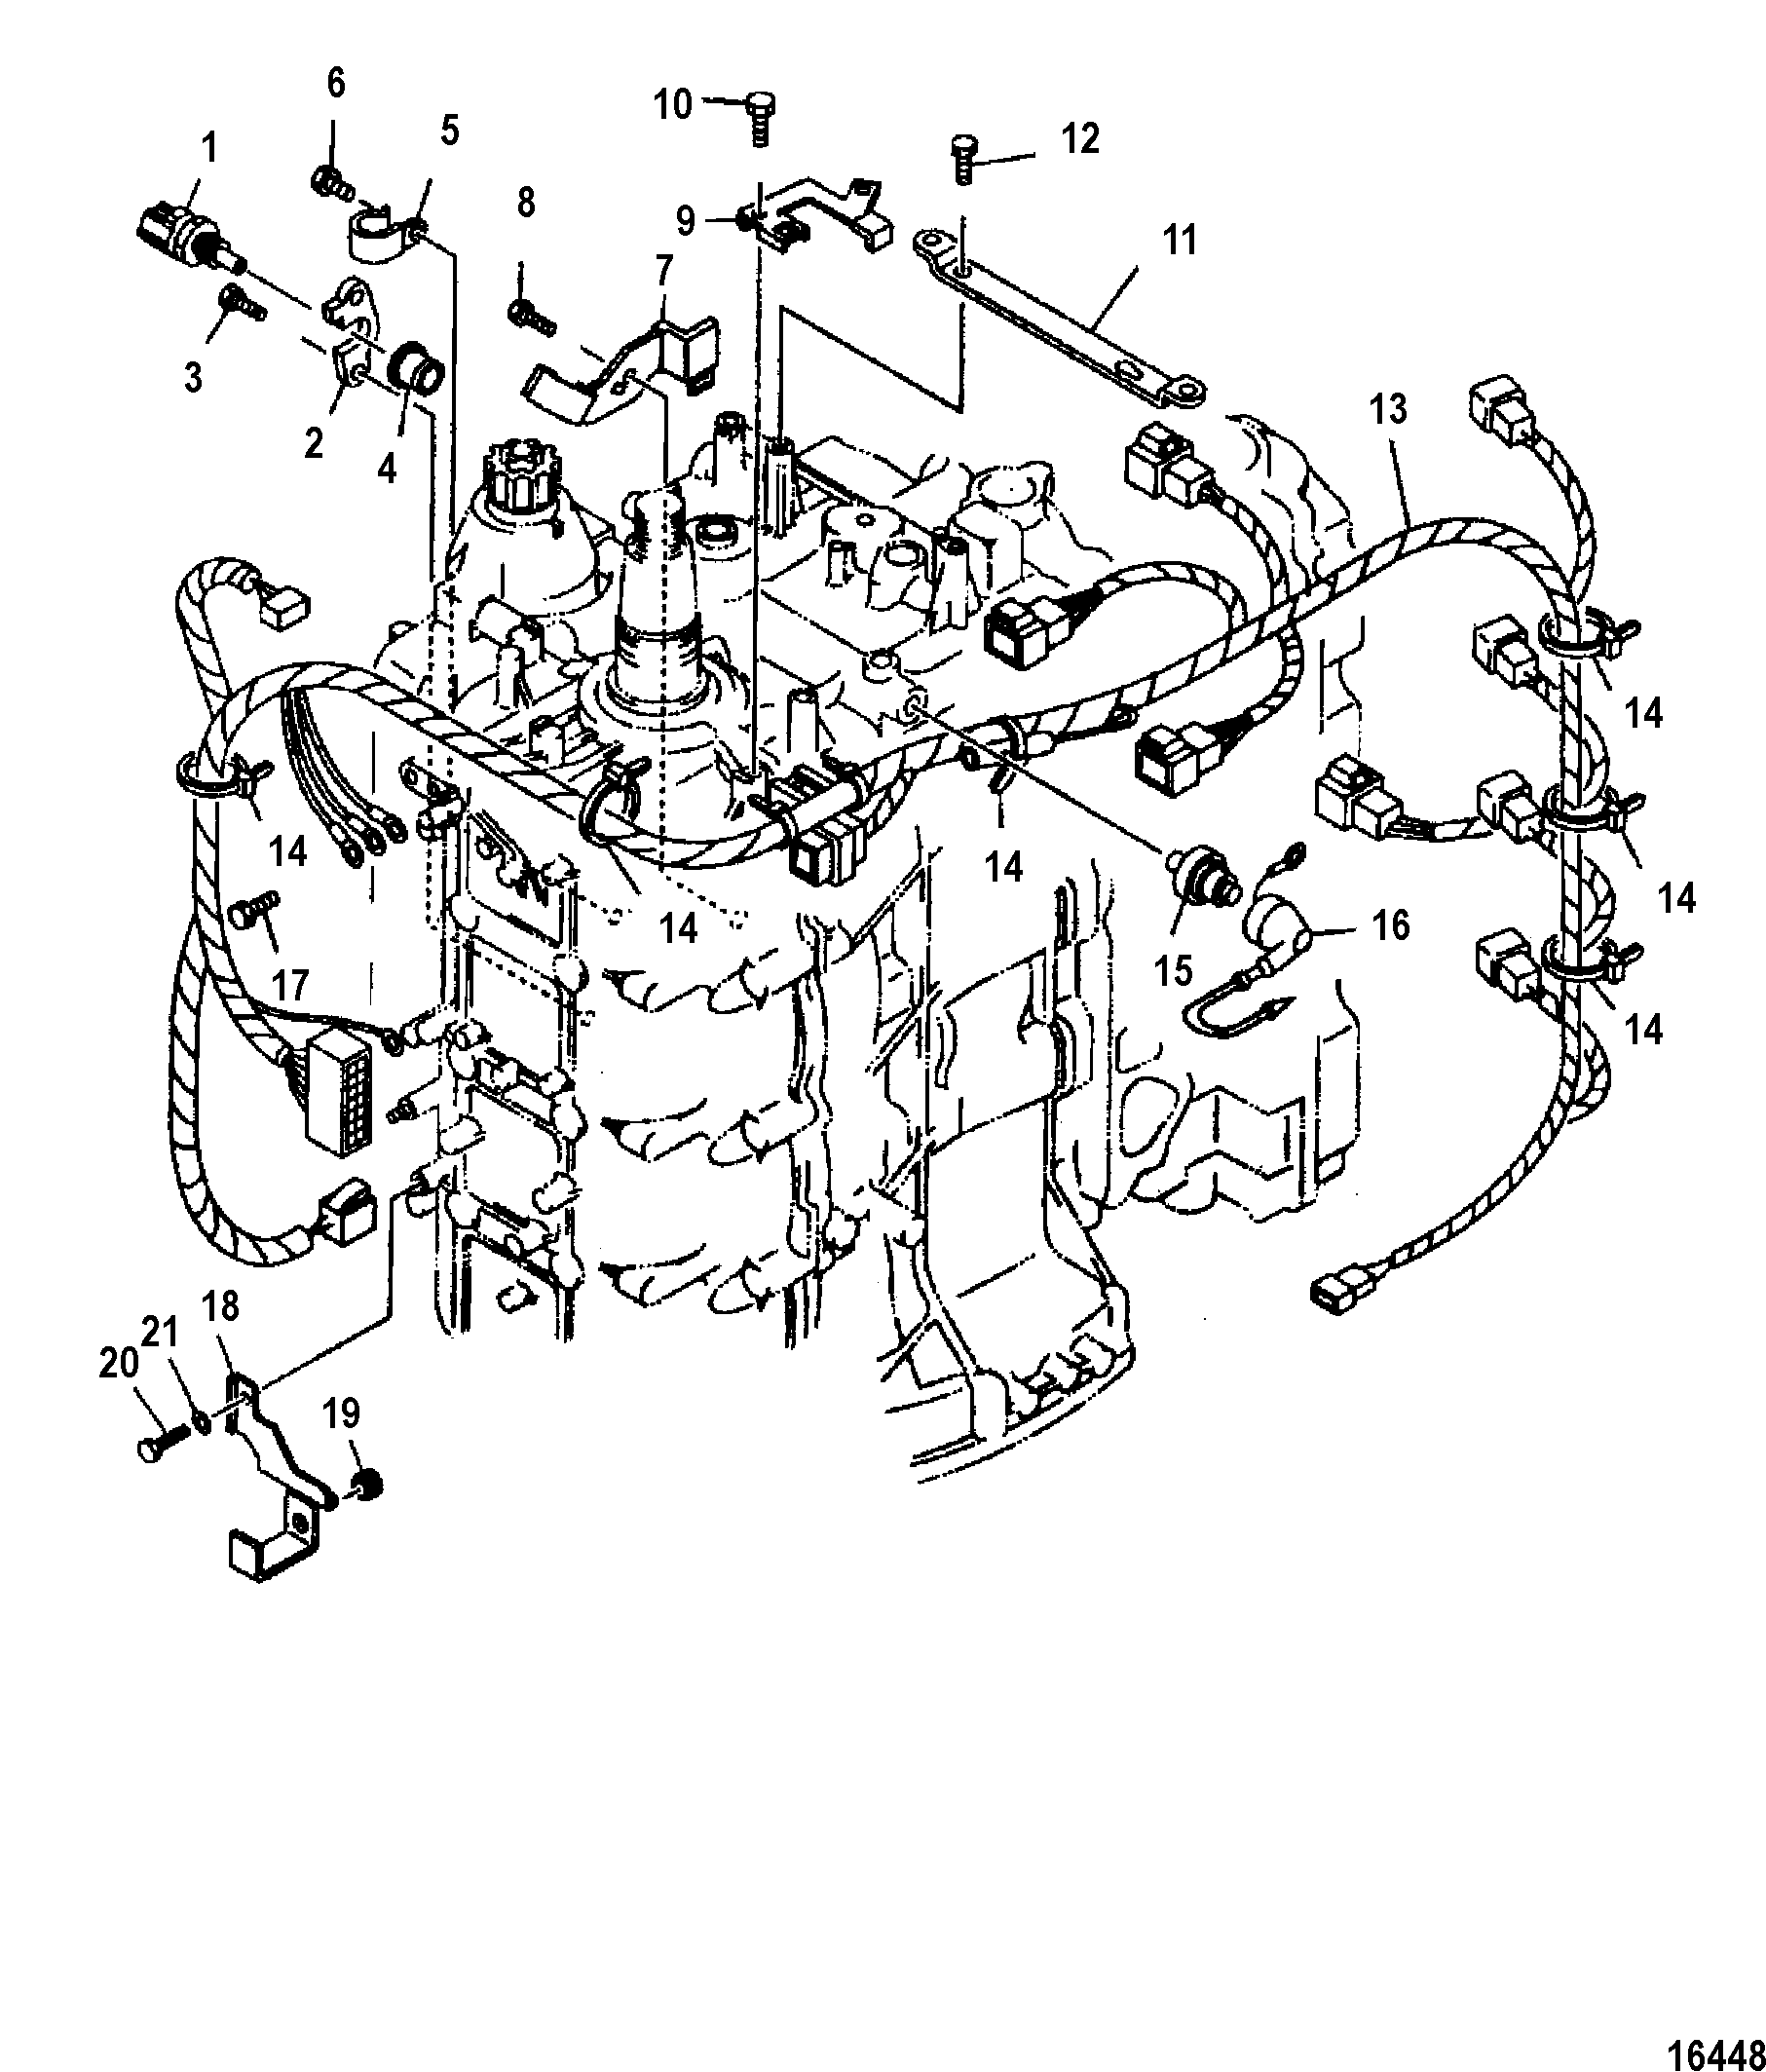 32 115 Hp Mercury Outboard Wiring Diagram